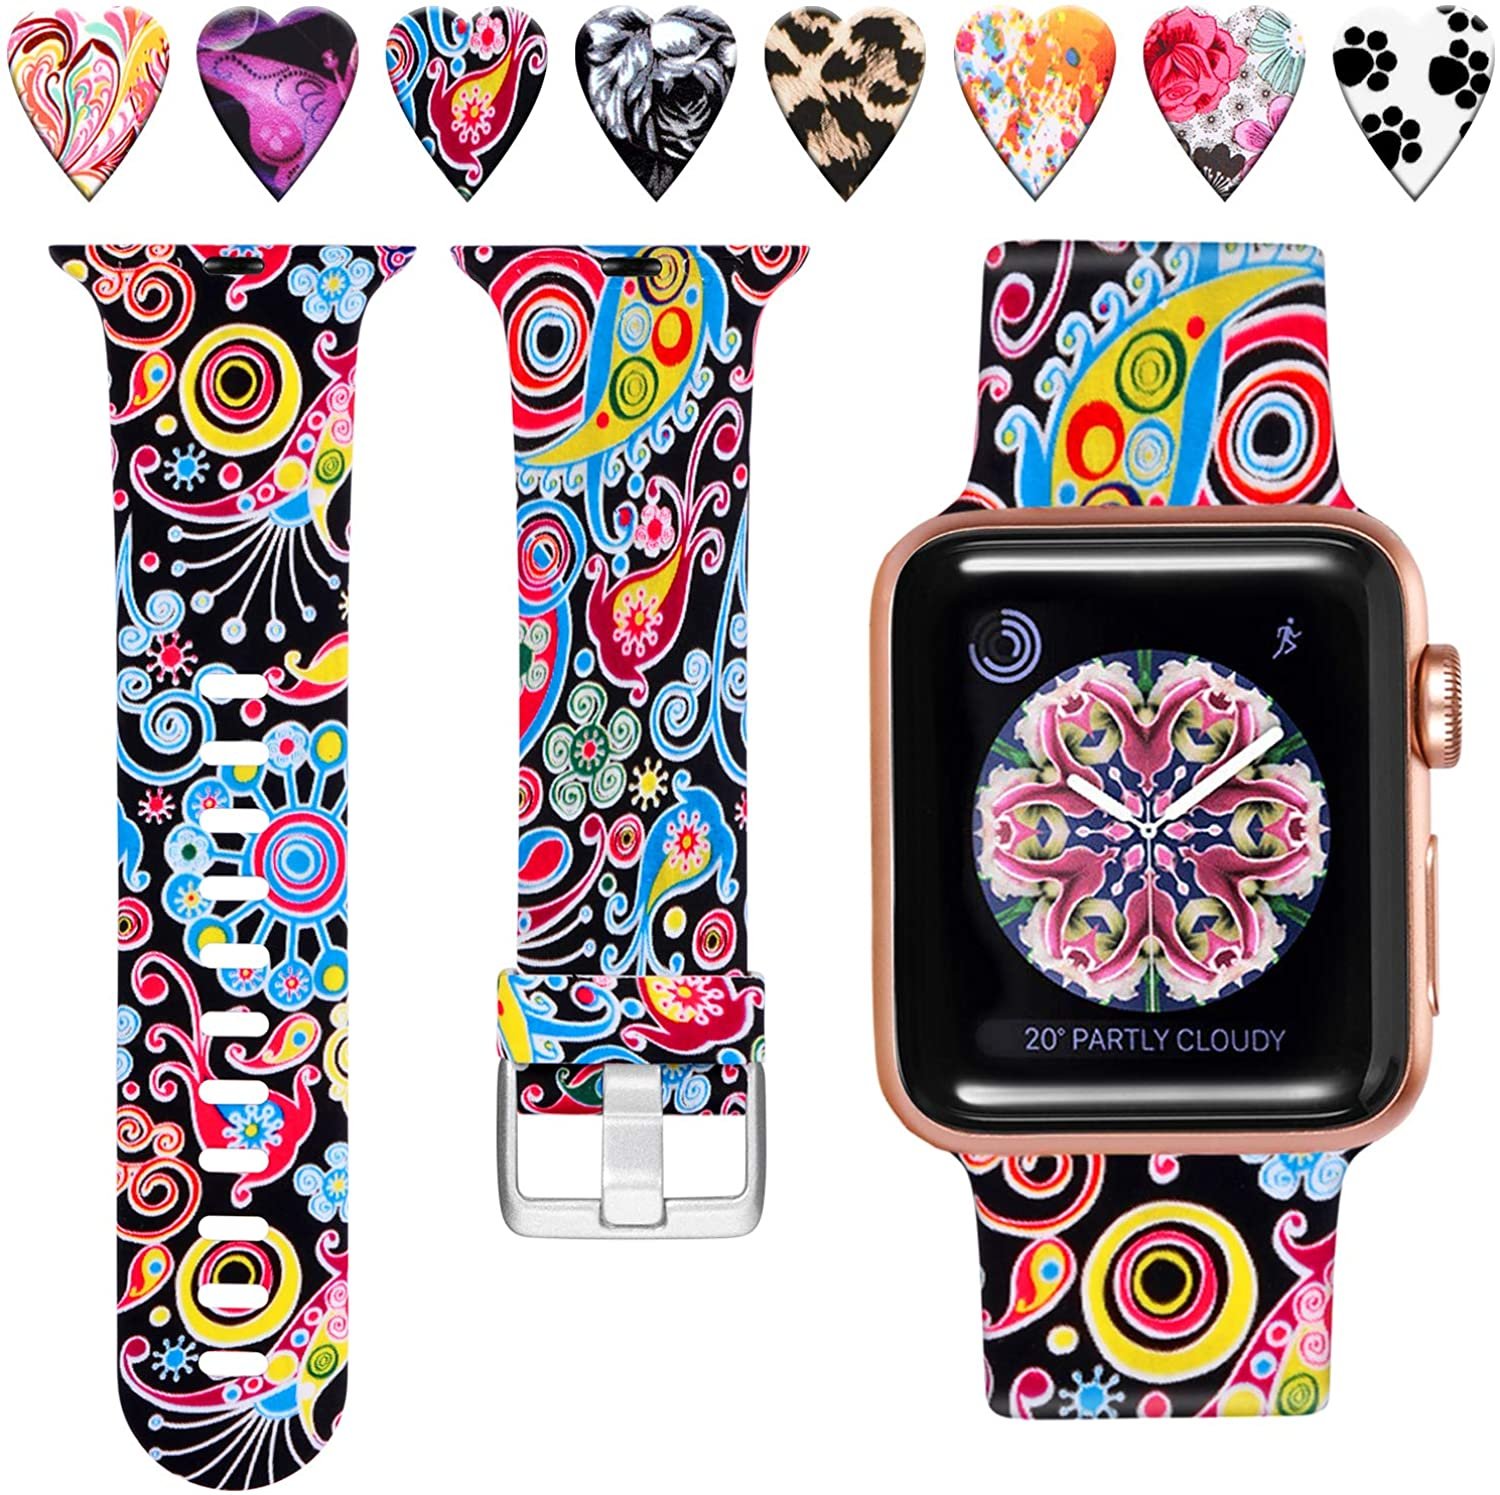 Laffav Compatible with Apple Watch Band 40mm 38mm 44mm 42mm for Women Men, Soft Silicone Sport Pattern Replacement Strap Compatible with iWatch SE Series 6 & Series 5 4 3 2 1